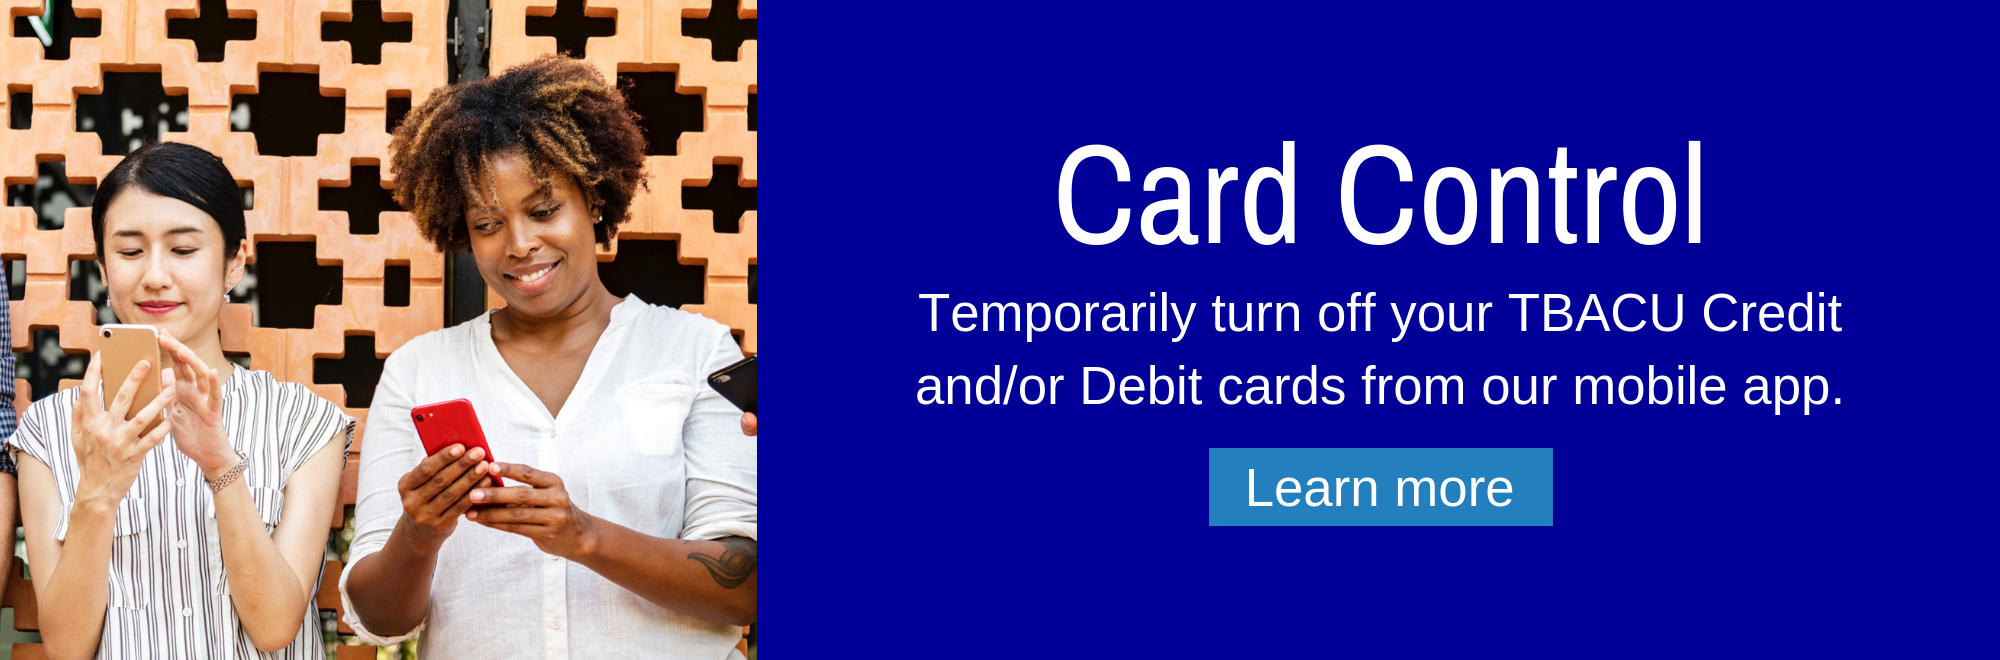 Temporarily turn off your TBACU cards from our mobile aap with Card Control